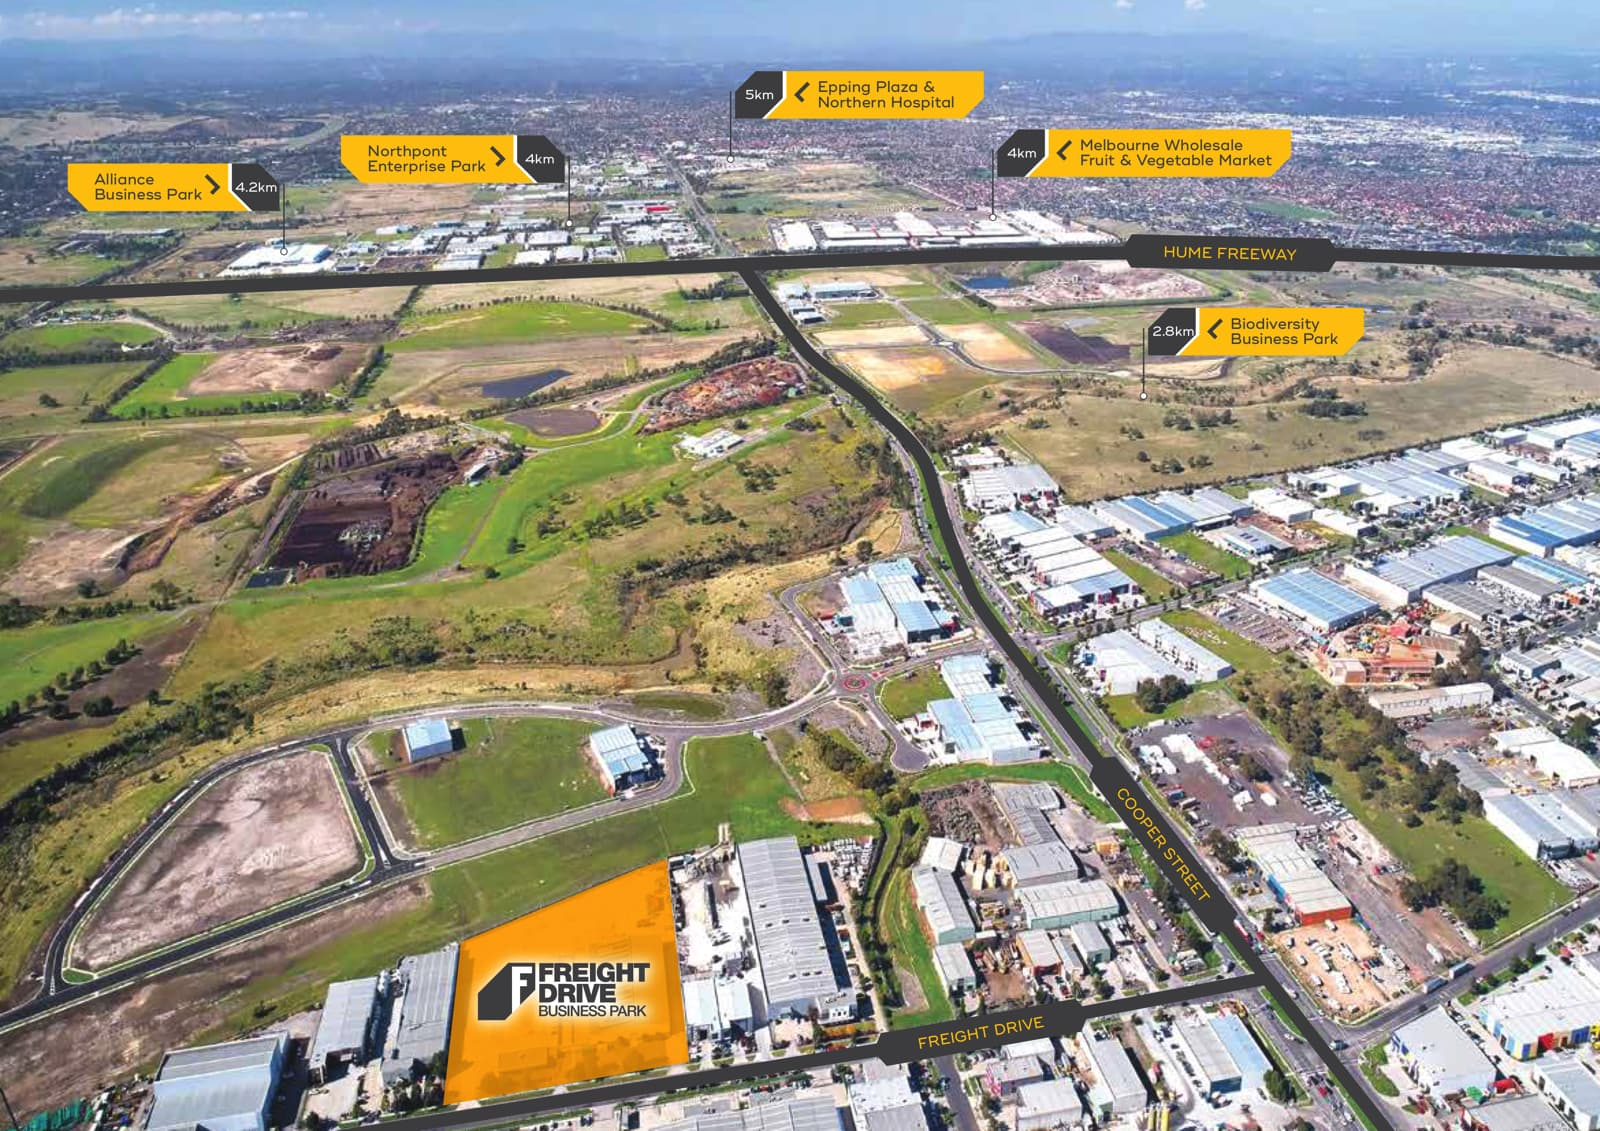 Freight Drive Business Park, Melbourne Market View